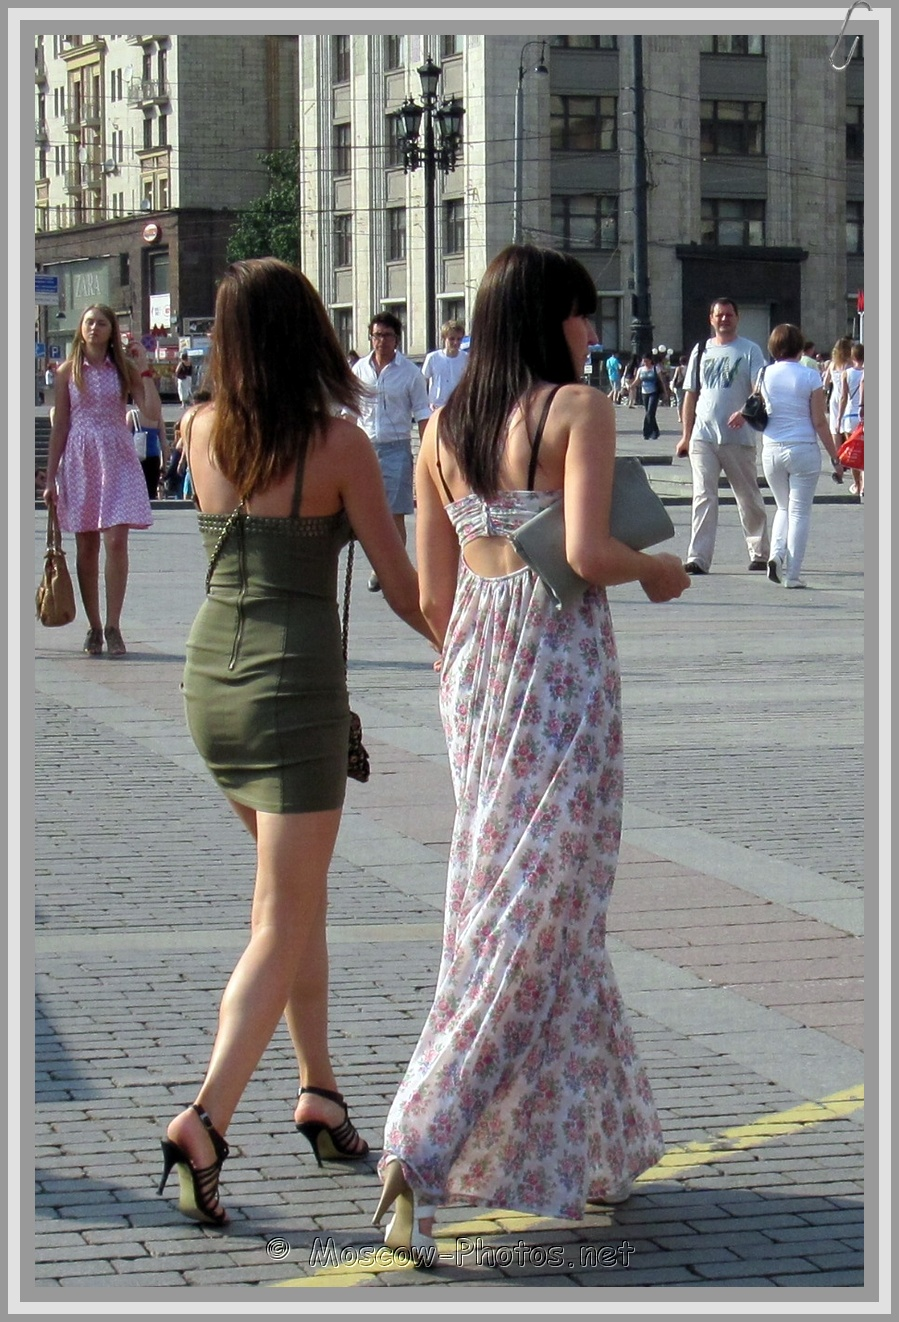 Friendly Rivalry - Summer Tight Mini Dress and Summer Subtle Floral Wide Maxi Dress